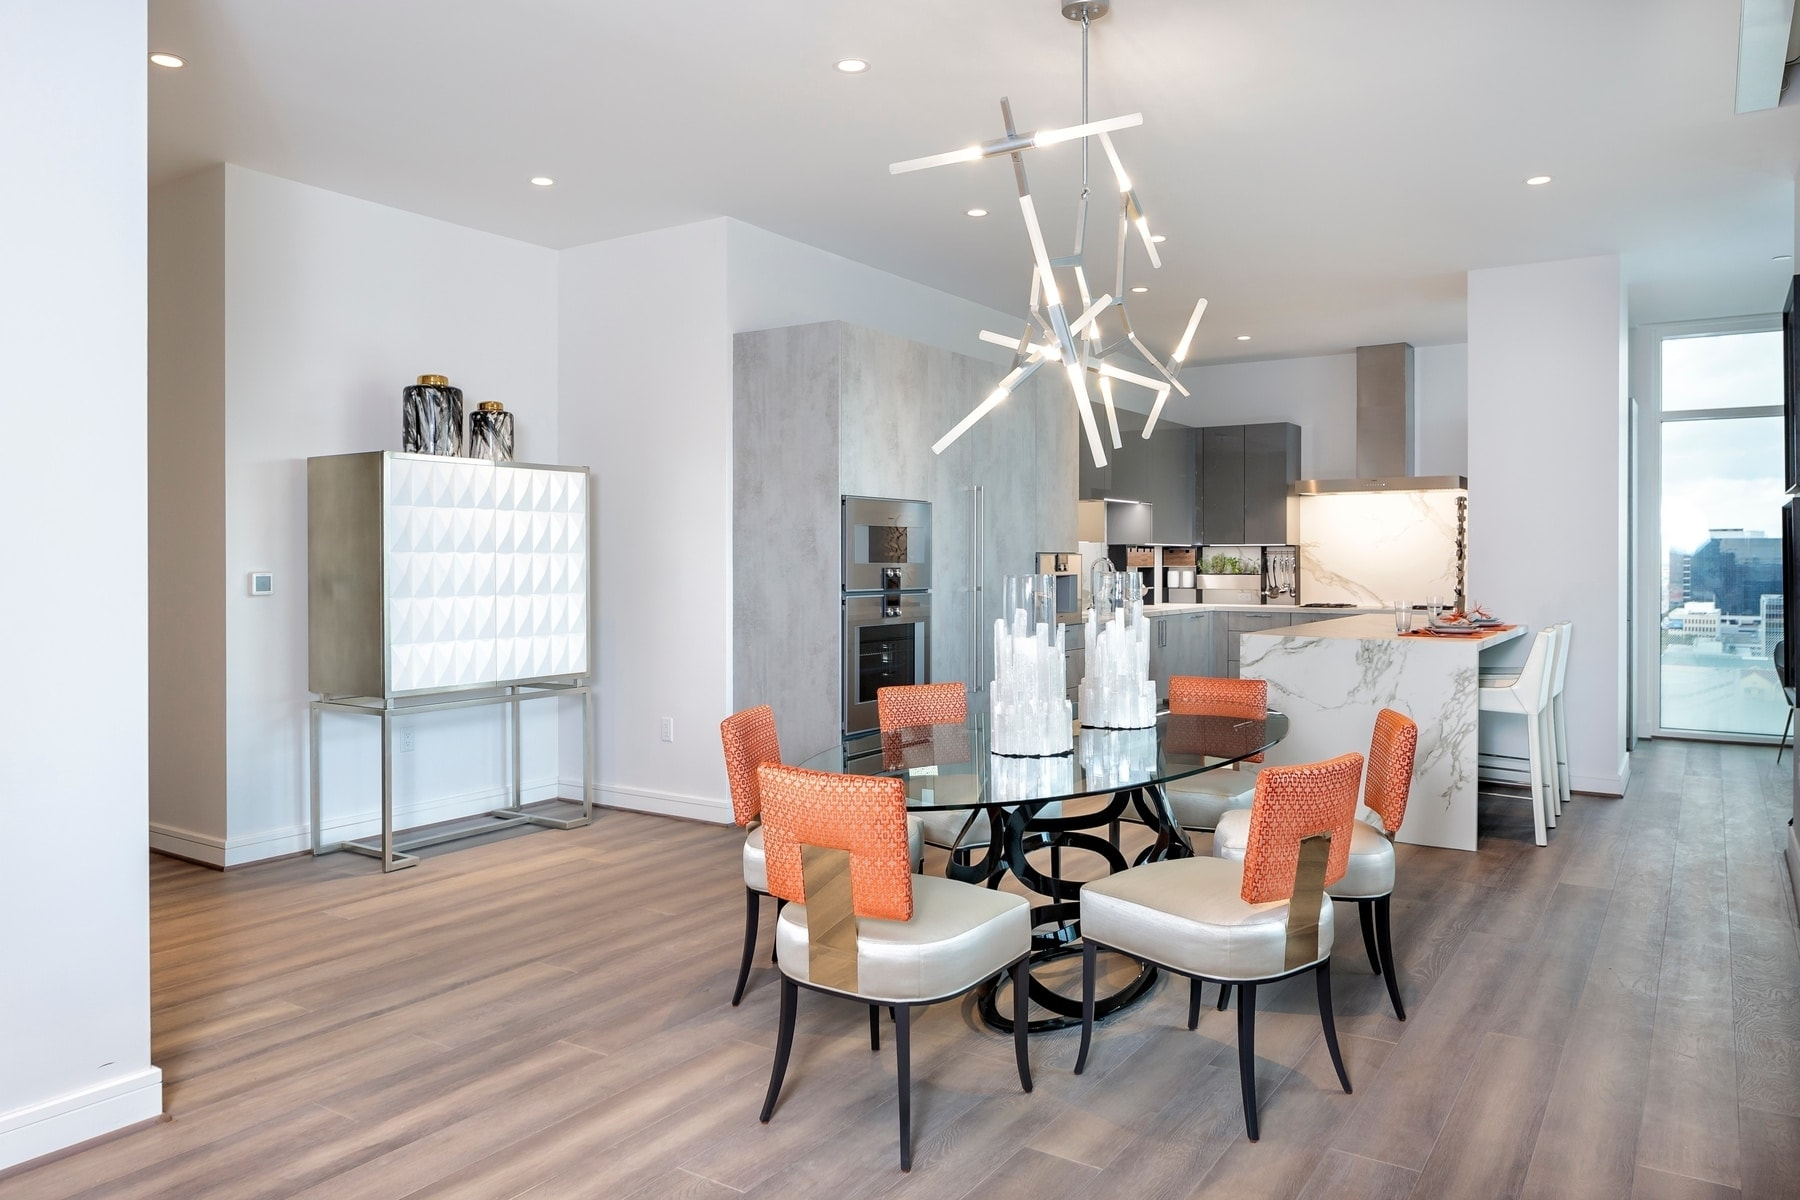 dining area of the eggersmann bespoke kitchen in the model unit of arabella luxury condos in houston